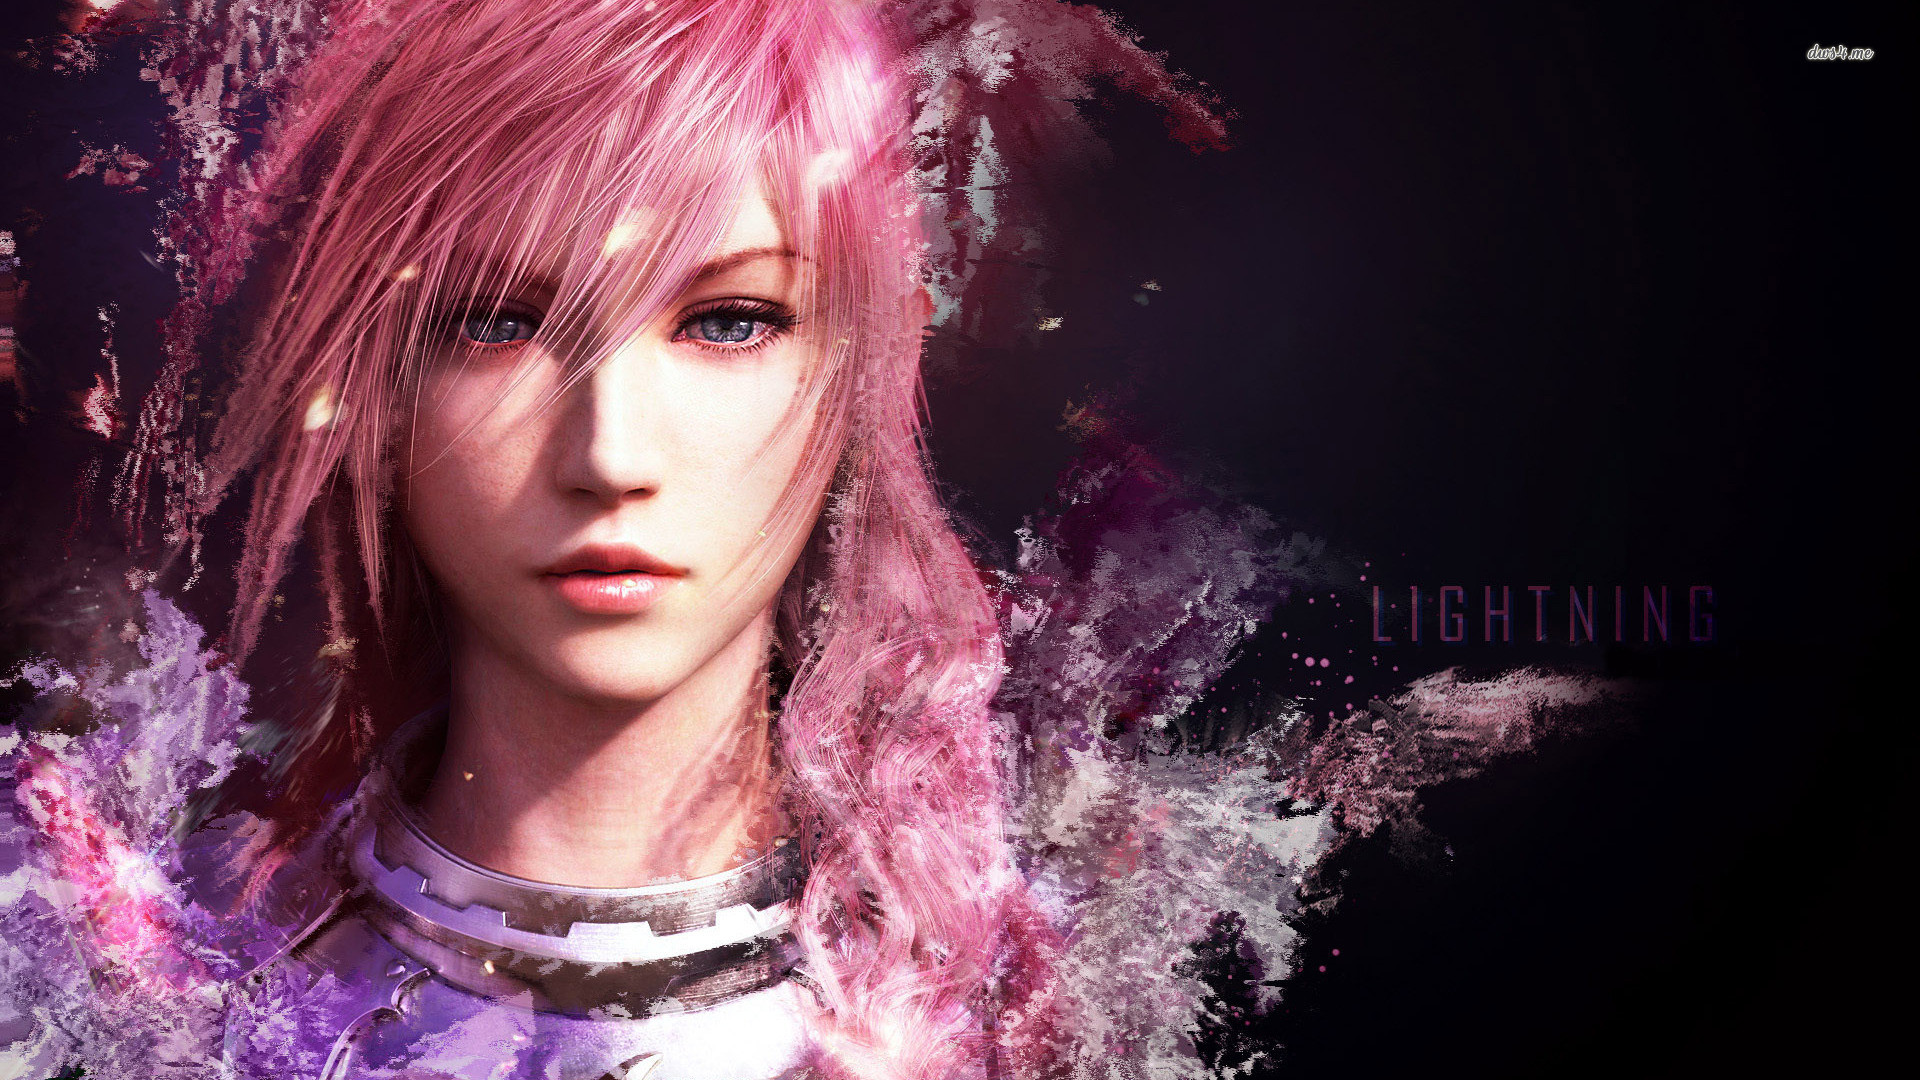 Final Fantasy Xiii 2 Cgi Cutscene Download Movies - francevegaloghv